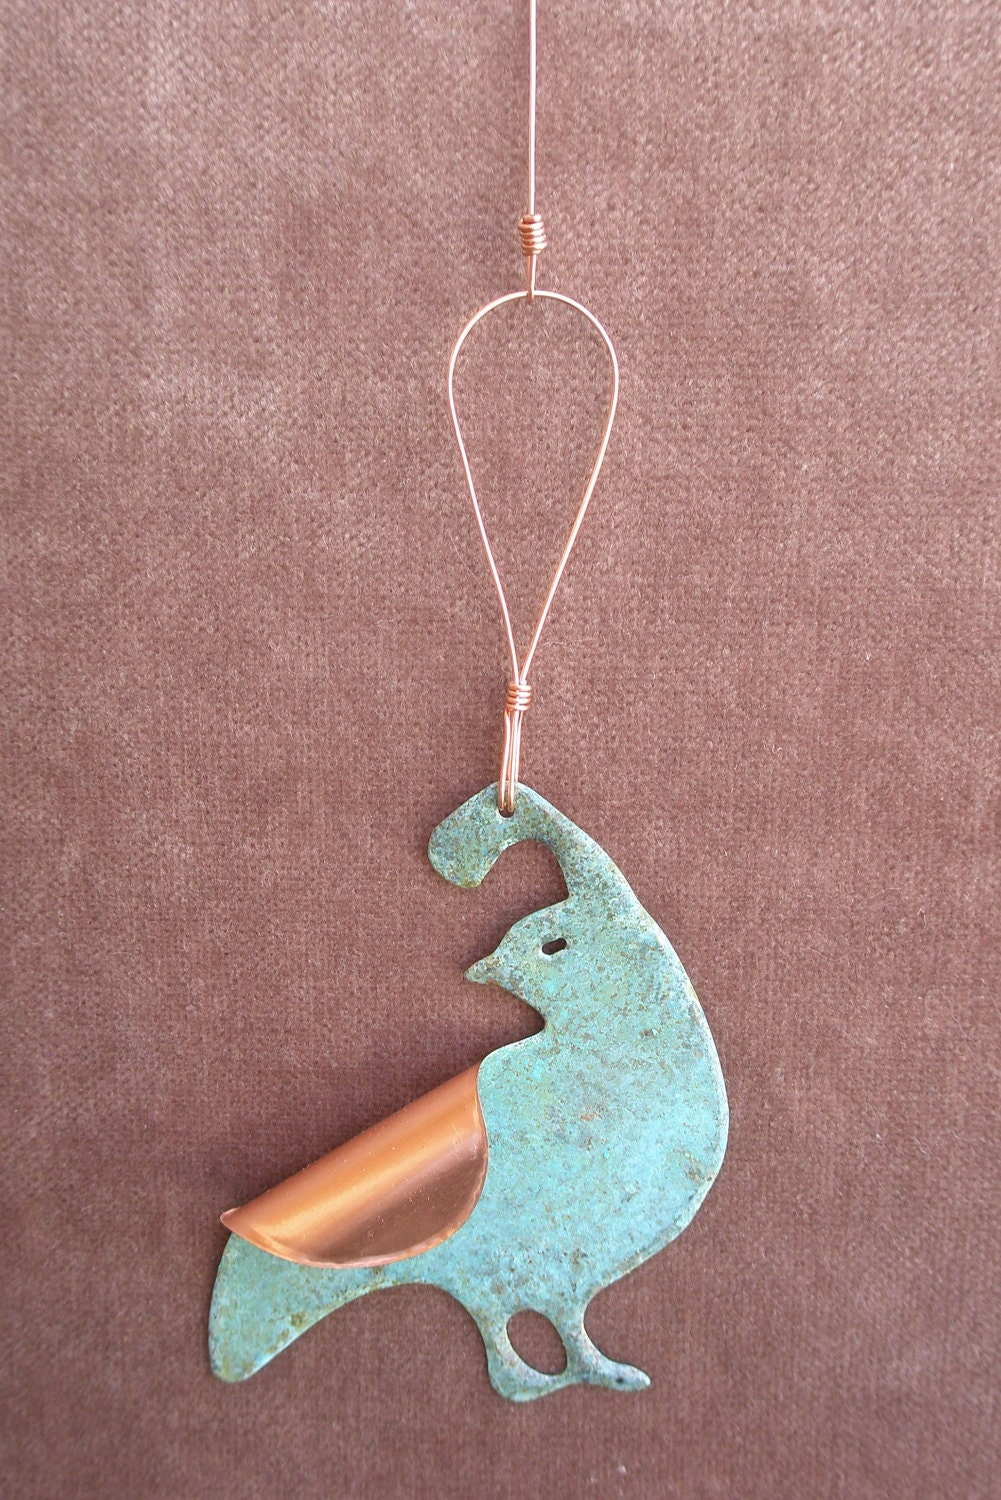 QUAIL Copper Verdigris Ornament - Handcrafted in The Copper State (Arizona USA)